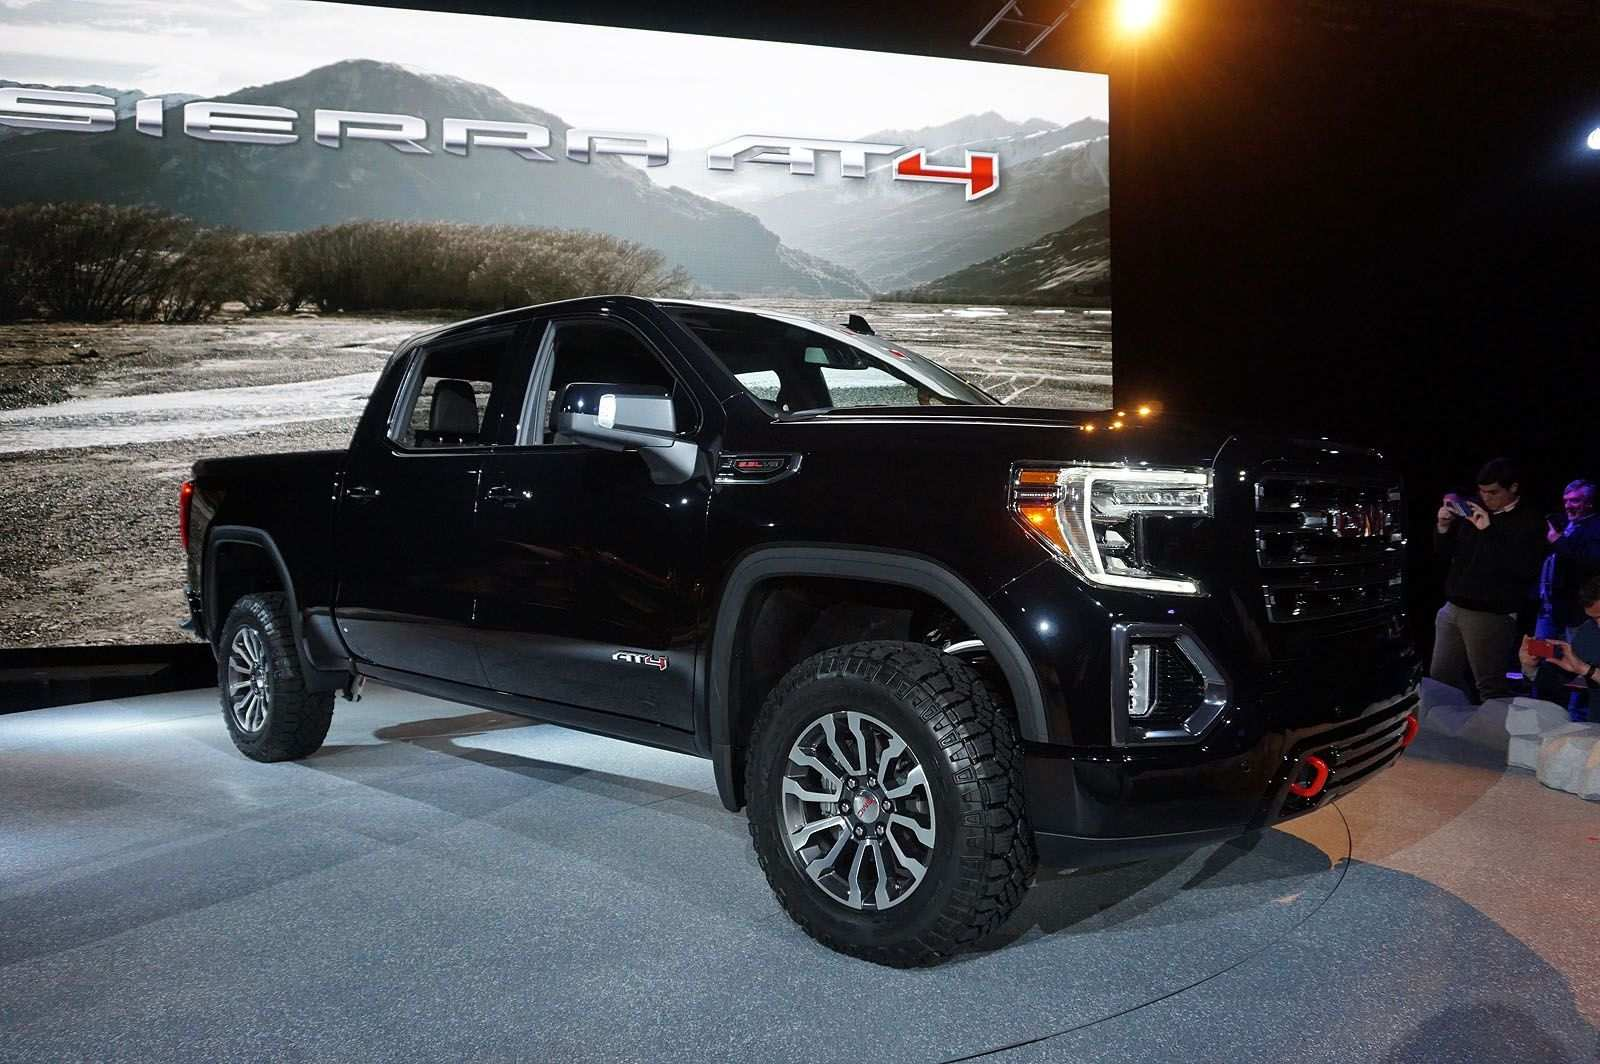 42 Best Review 2019 Bmw Sierra At4 New Review for 2019 Bmw Sierra At4